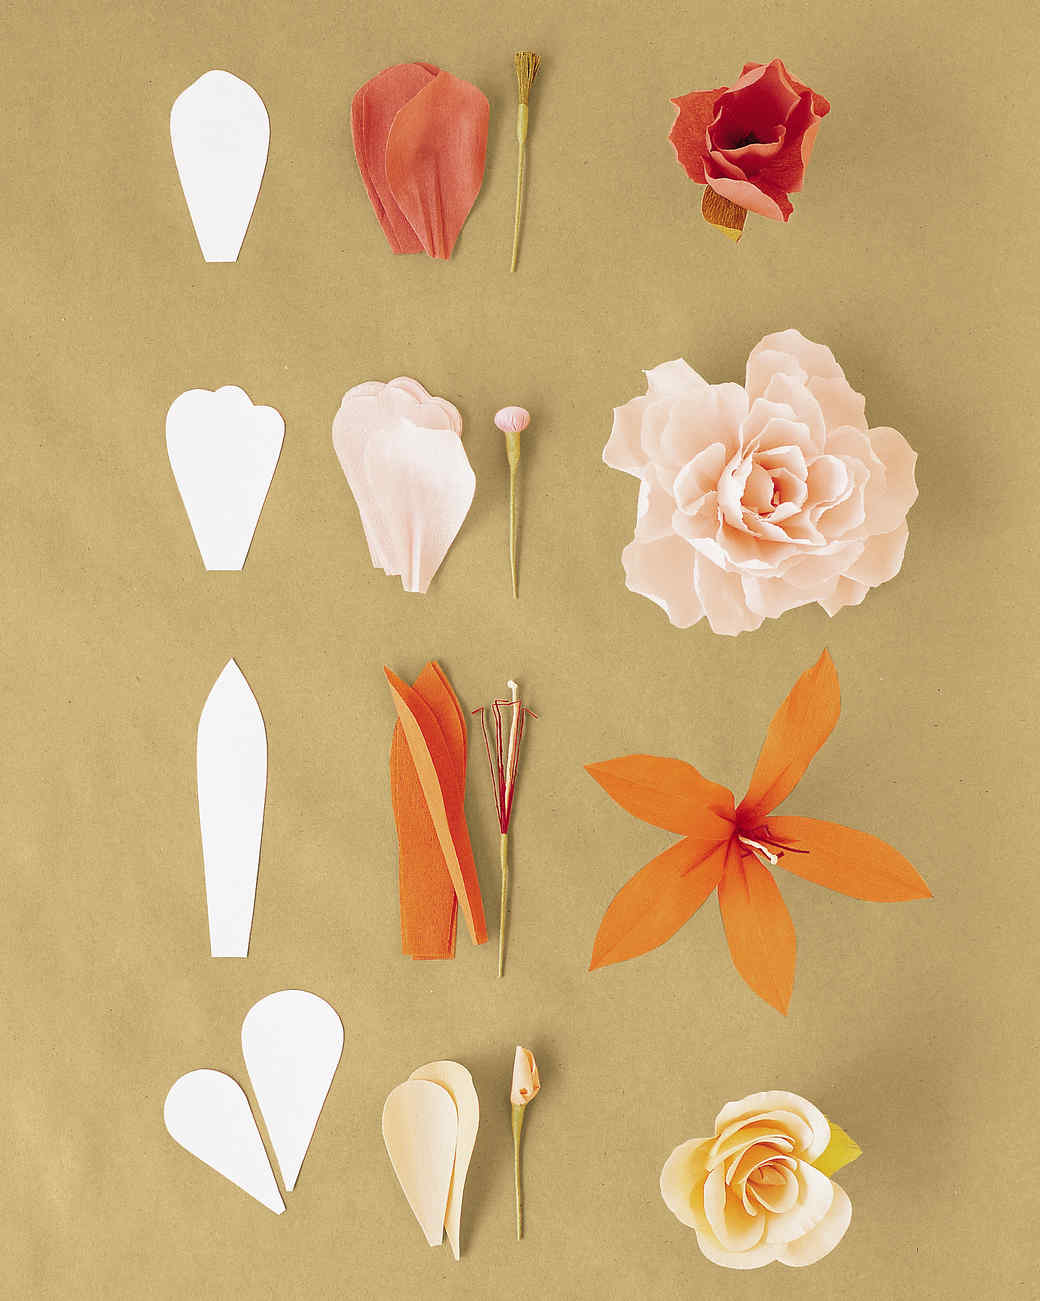 Diy crepe paper flower yelomdiffusion how to make crepe paper flowers martha stewart mightylinksfo